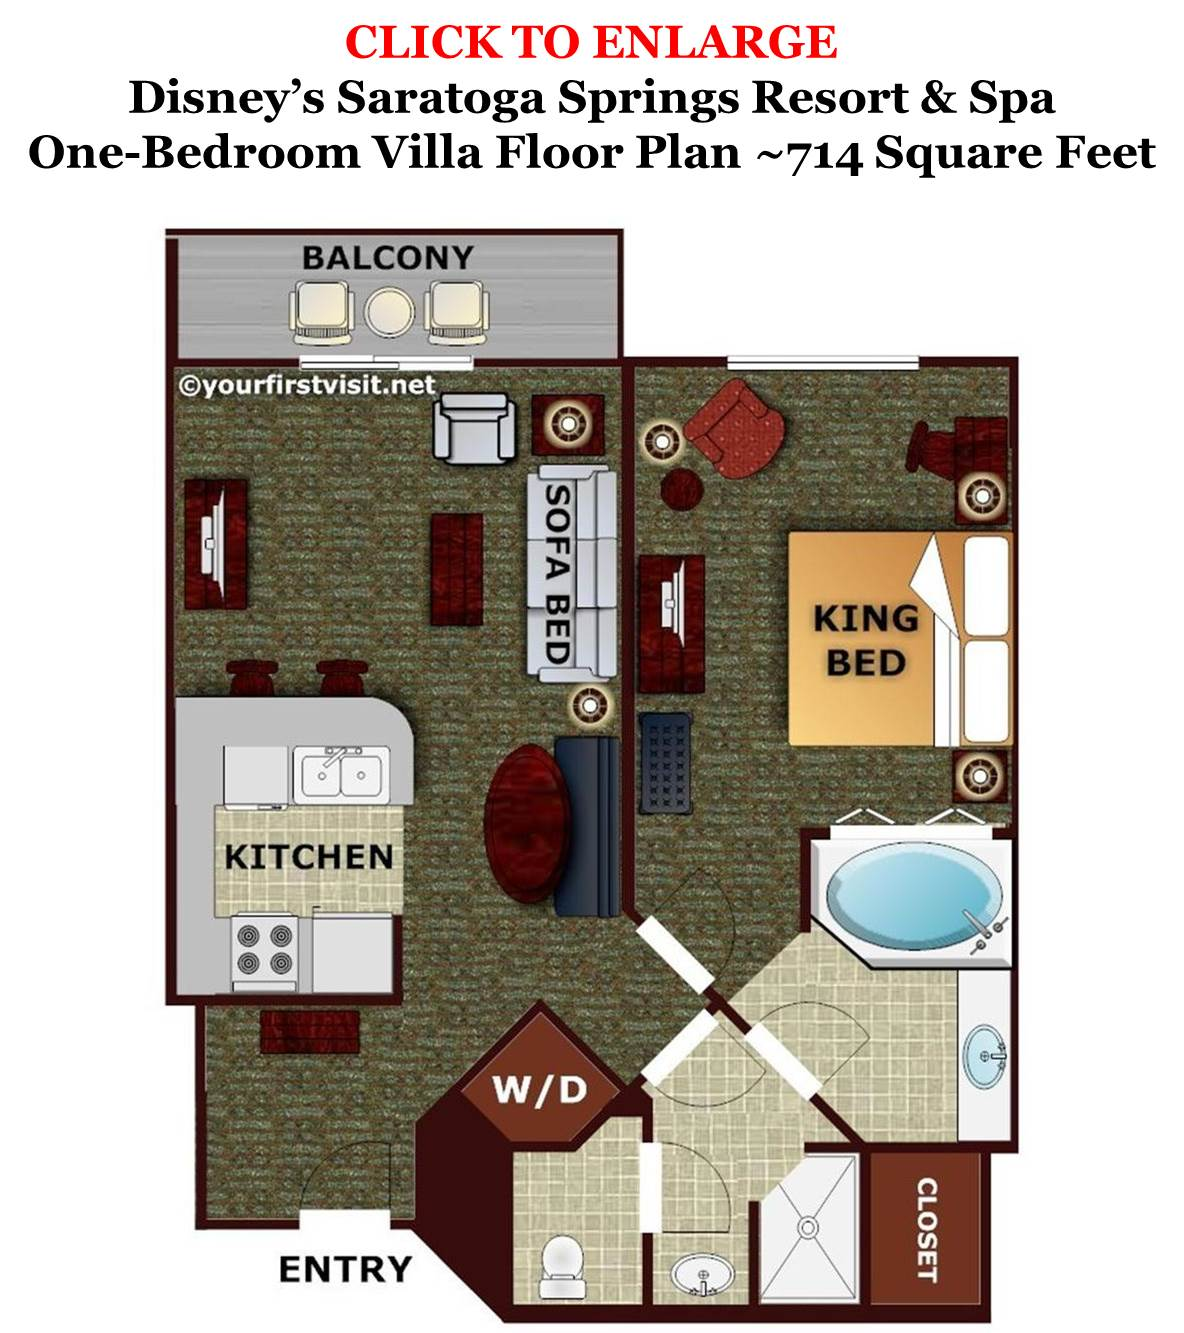 Old Key West 1 Bedroom Villa Floor Plan Review Bay Lake Tower At Disney S Contemporary Resort